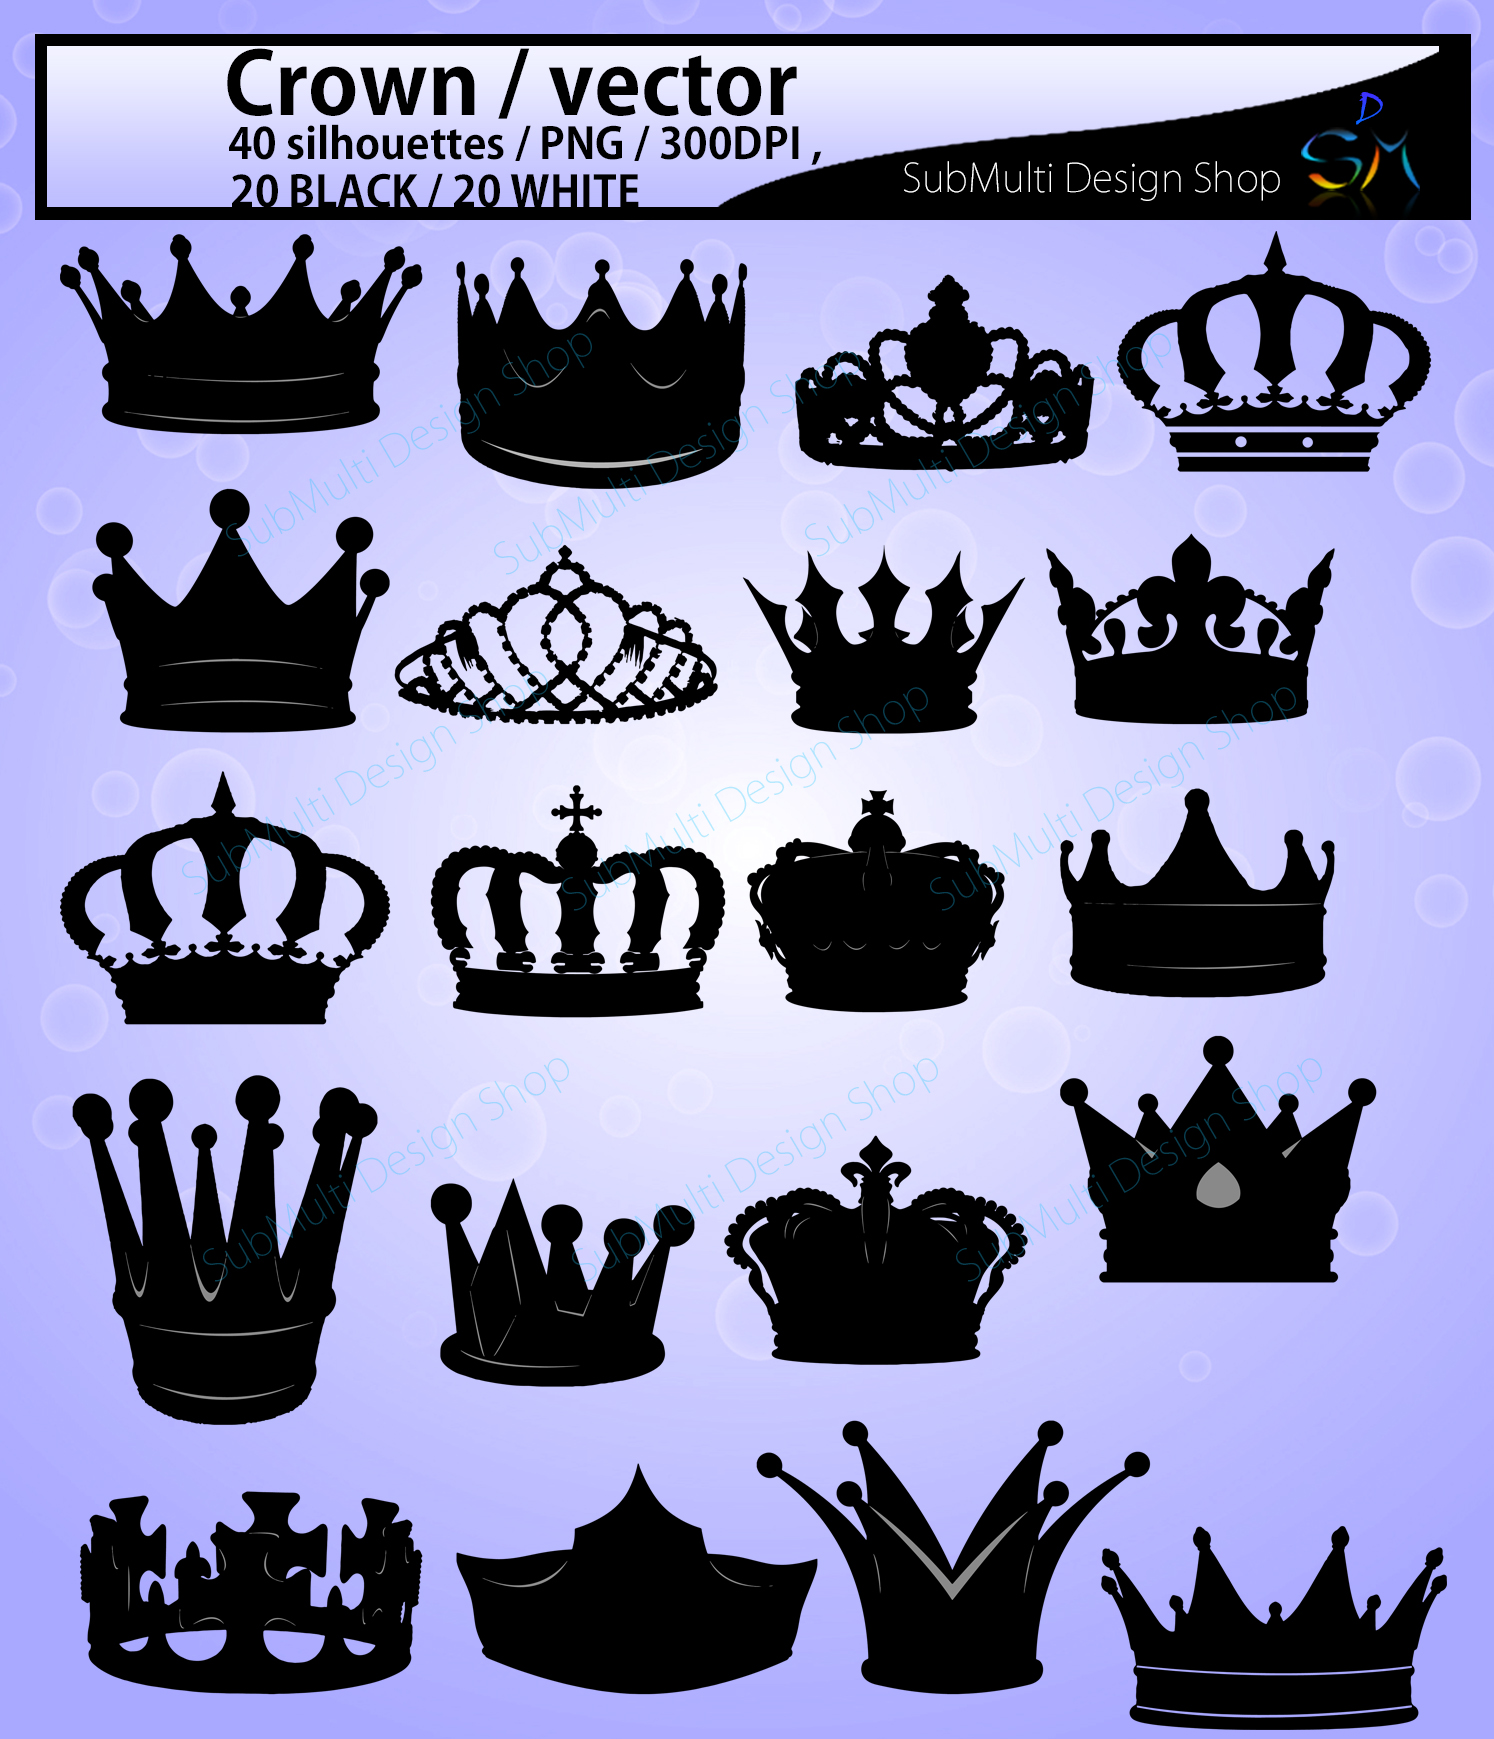 crown svg / crown /crown clipart / crown silhouette vector example image 2